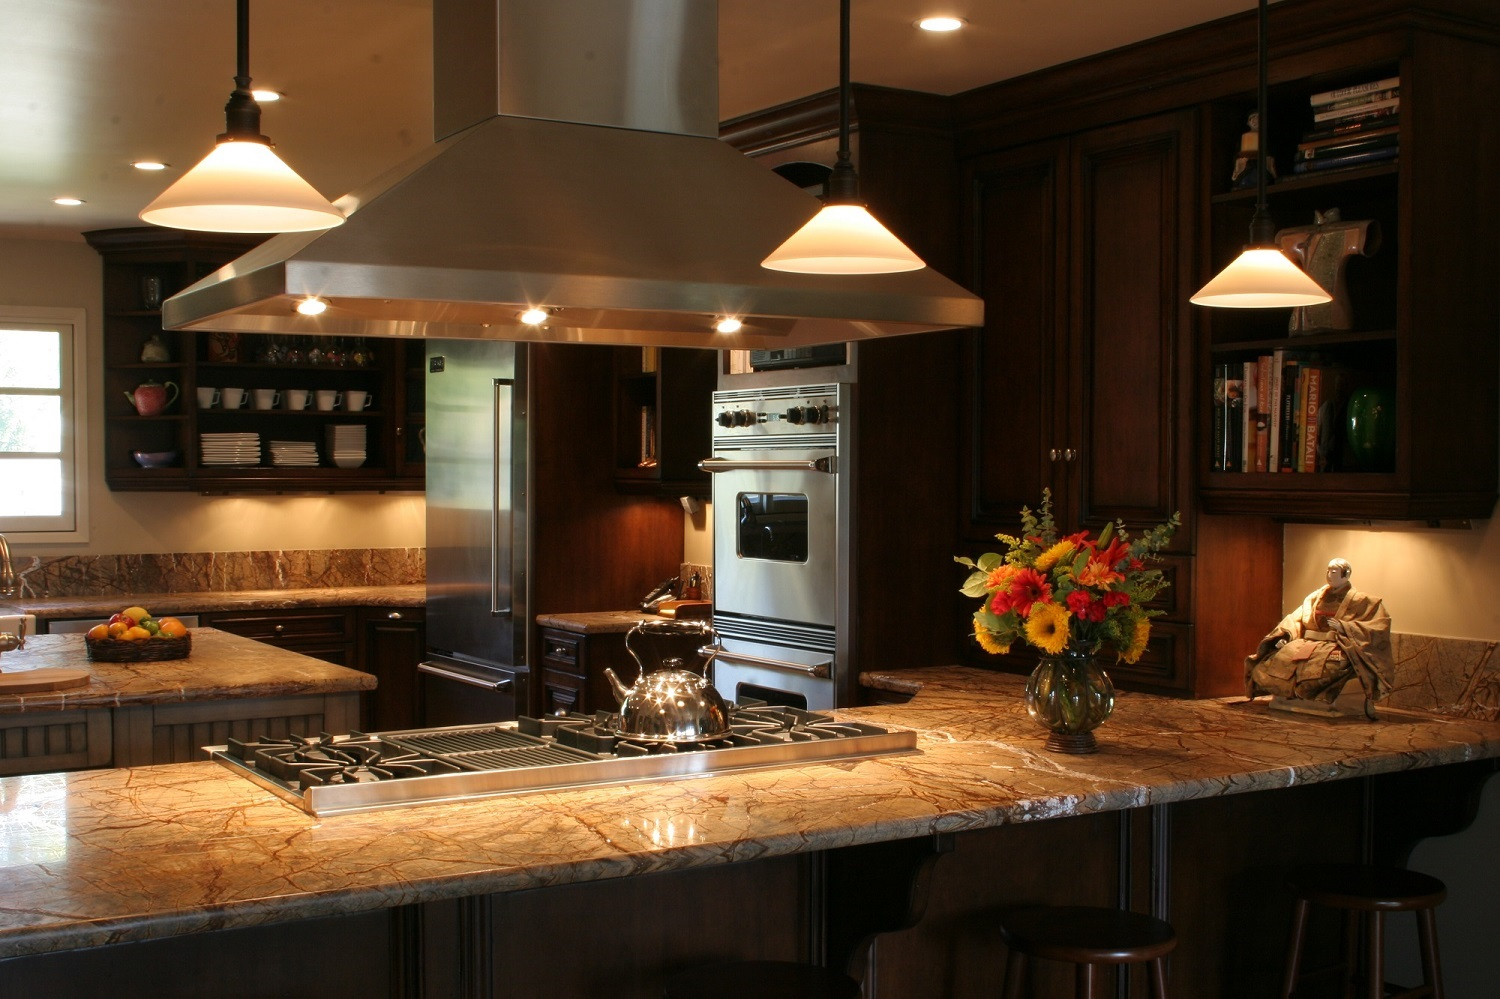 diy kitchen remodel diy kitchen remodel Planning a kitchen remodel Why you should hire a kitchen designer even if you